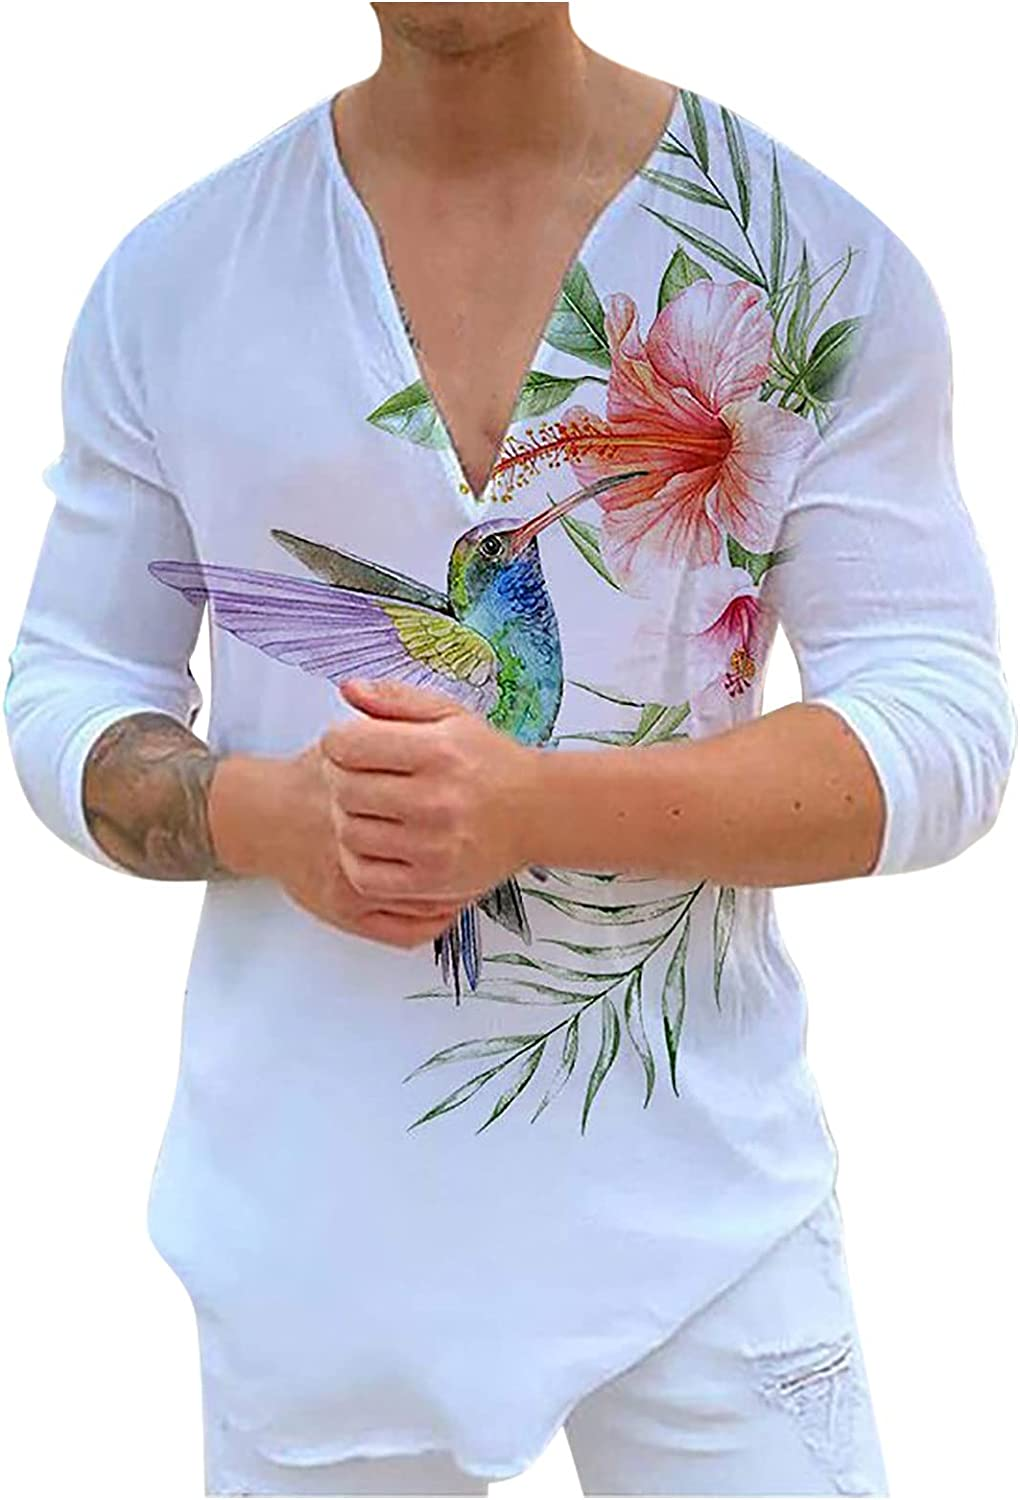 Men's Imitation Cotton Shirt Ultra-Cheap Deals Limited time cheap sale Casual Loose Pullov Printed Graphic